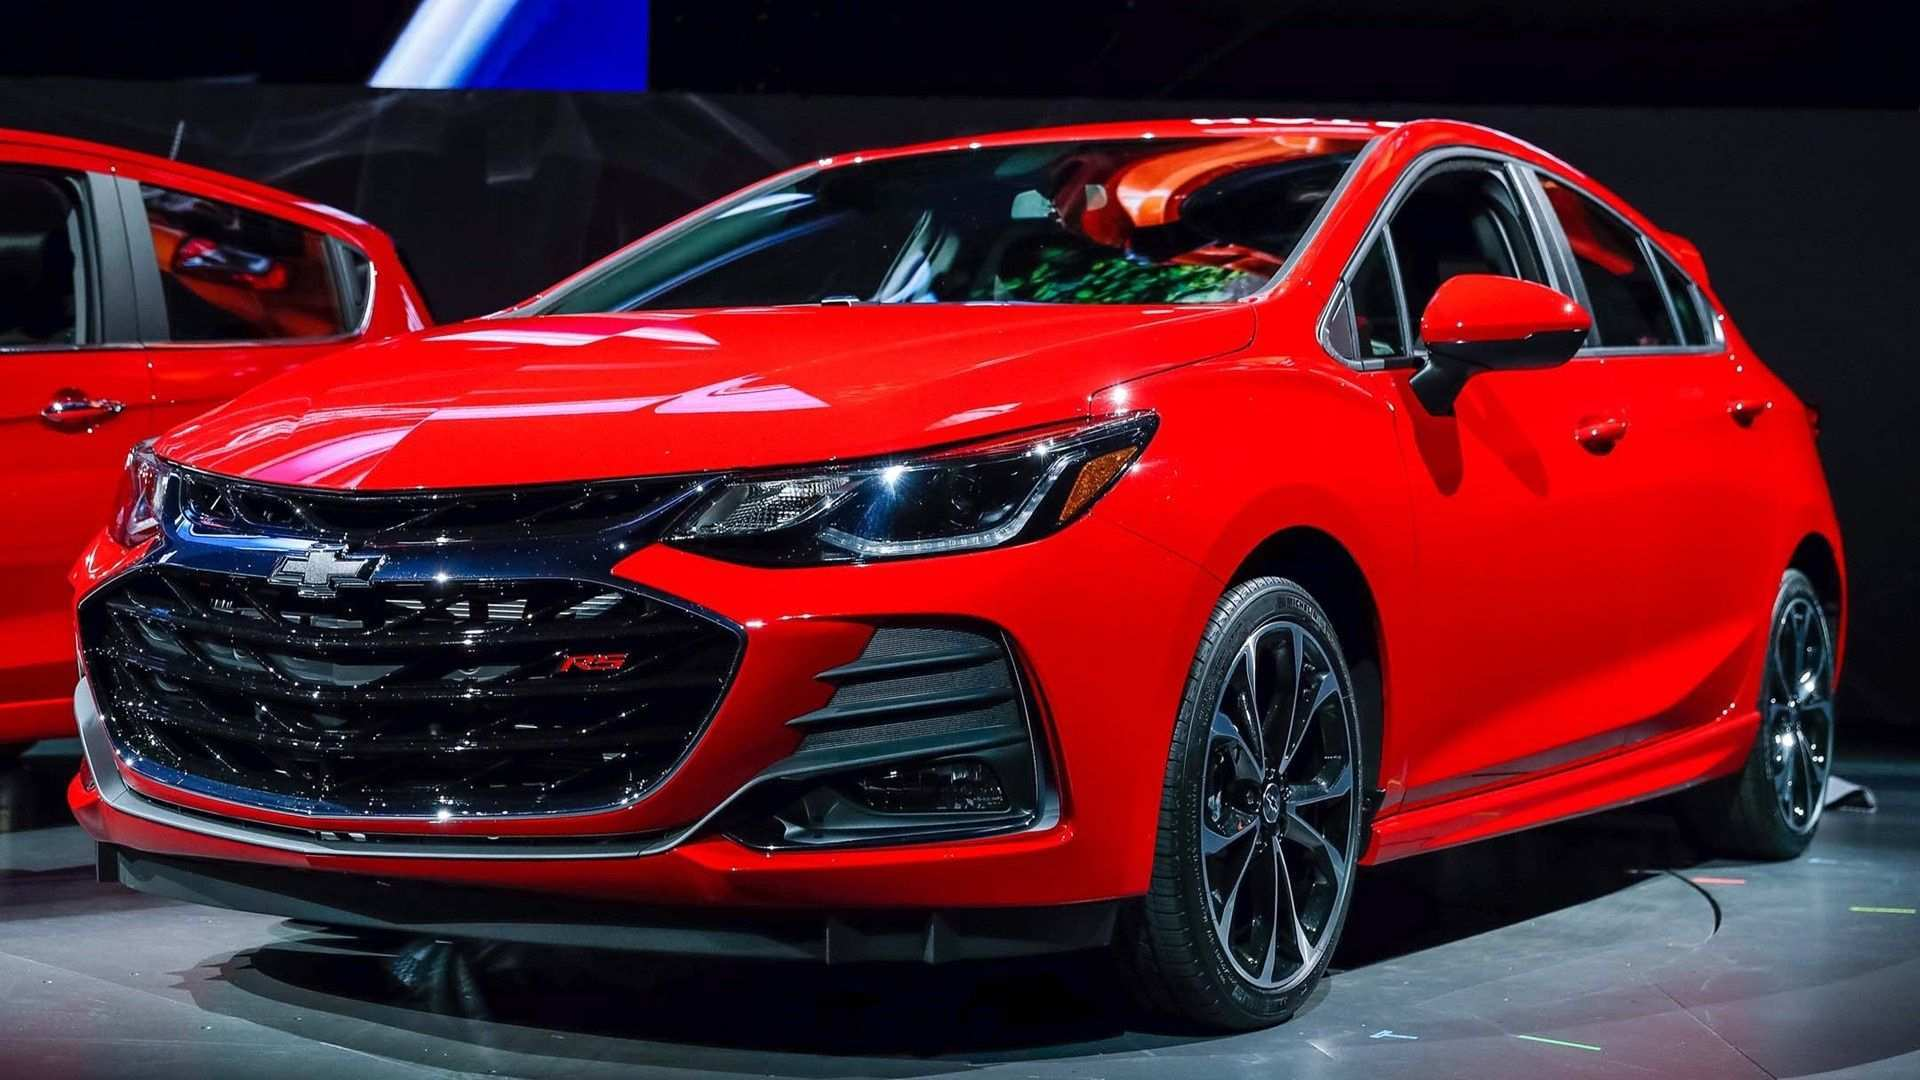 90 Gallery of 2020 Chevrolet Spark Picture with 2020 Chevrolet Spark